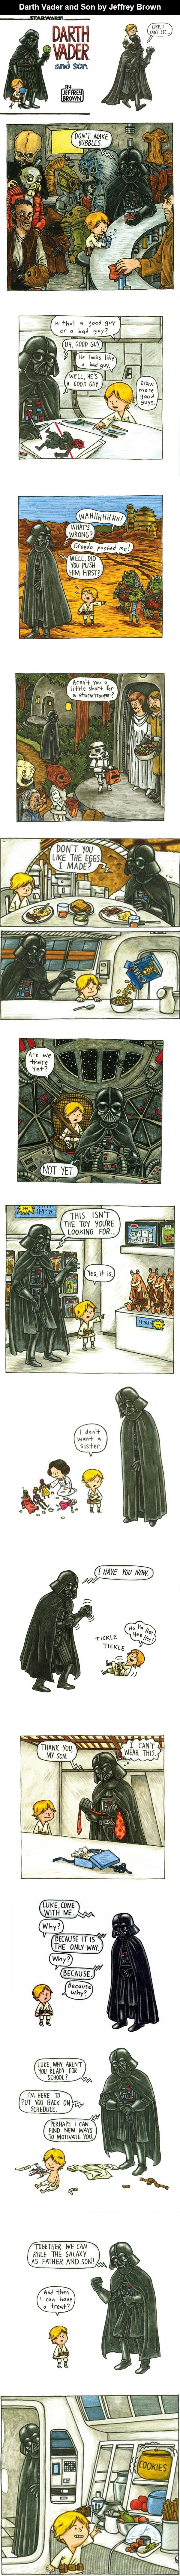 #Darth #Vader and #Son